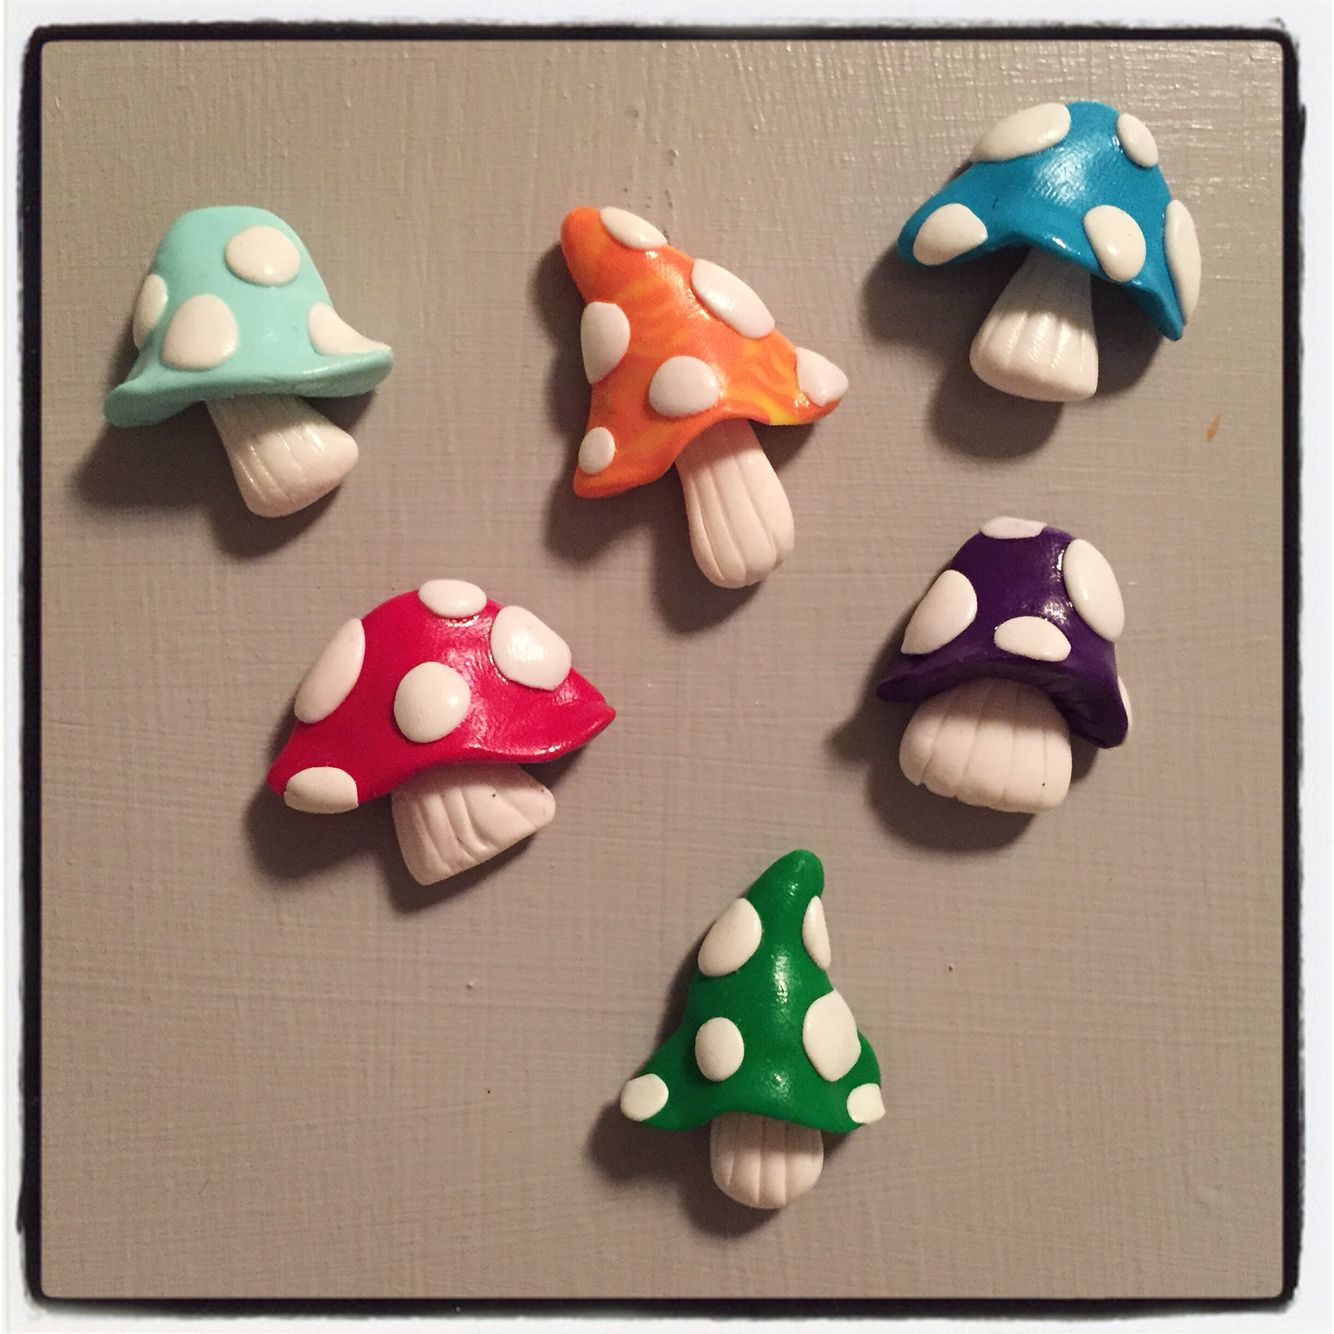 Polymer clay mushroom magnets! -By Tiny Things By Bowen